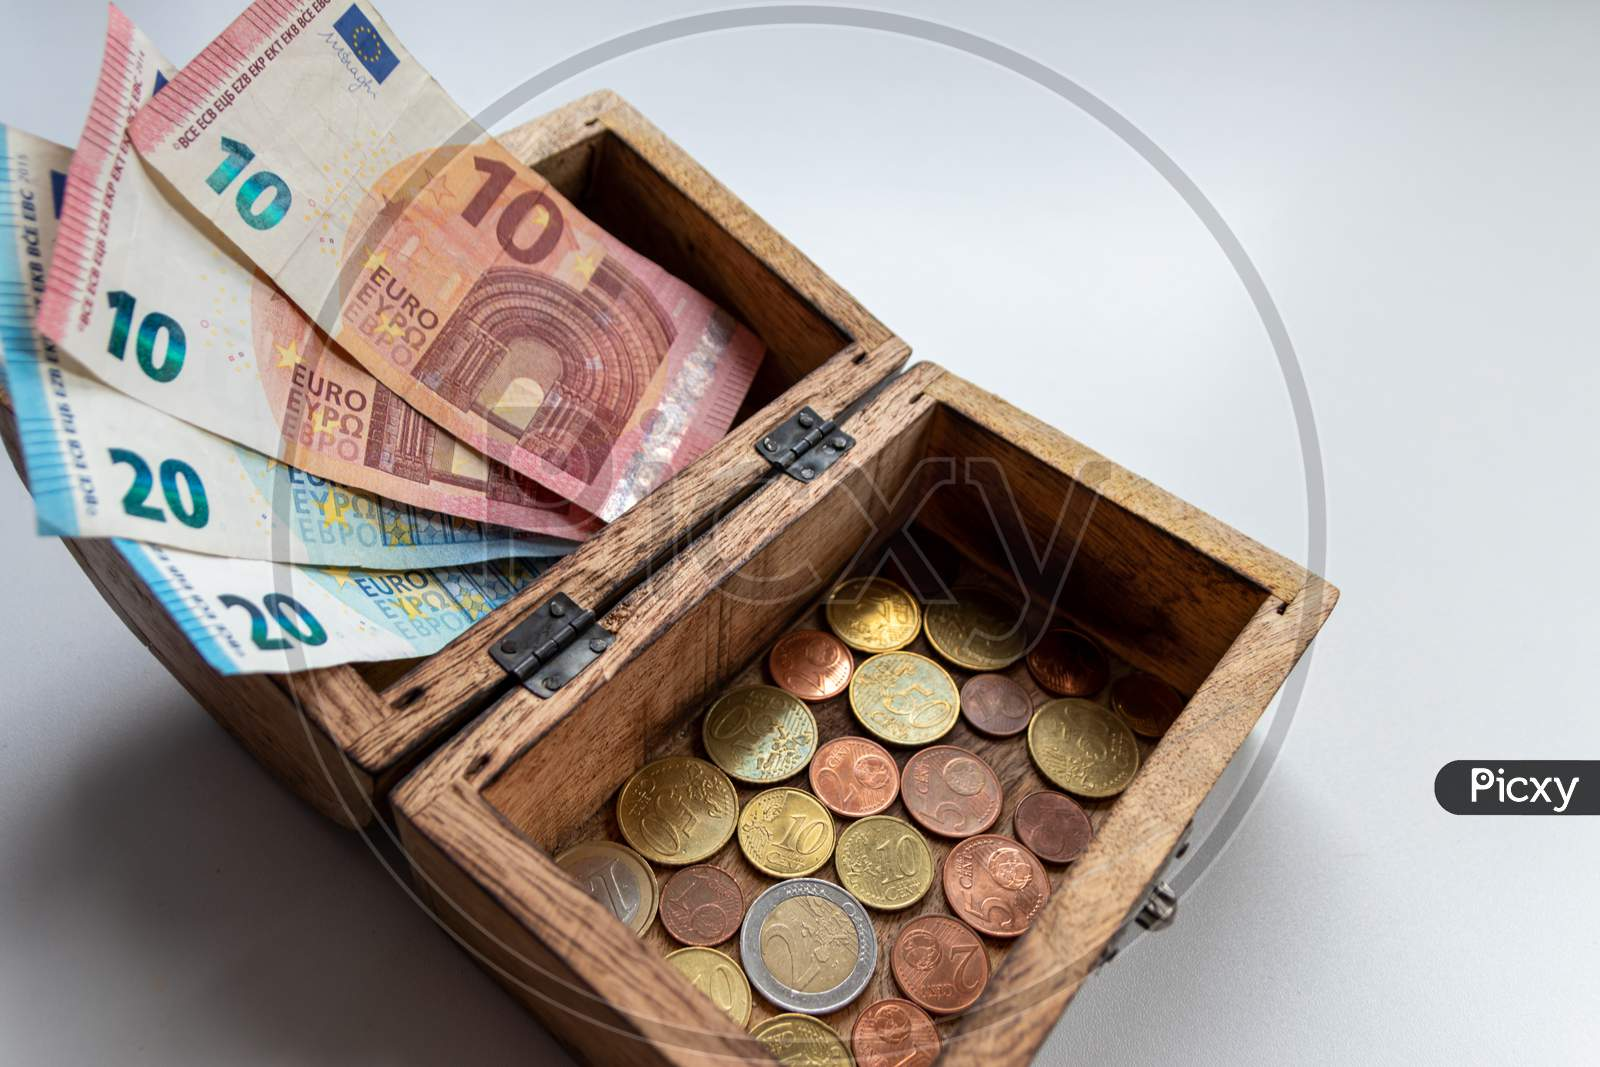 Bunch of european money with coins and bank notes show international finance with euro and europe, financial trade with a 2 euro coin and different euro coins and euro bank notes for financial success